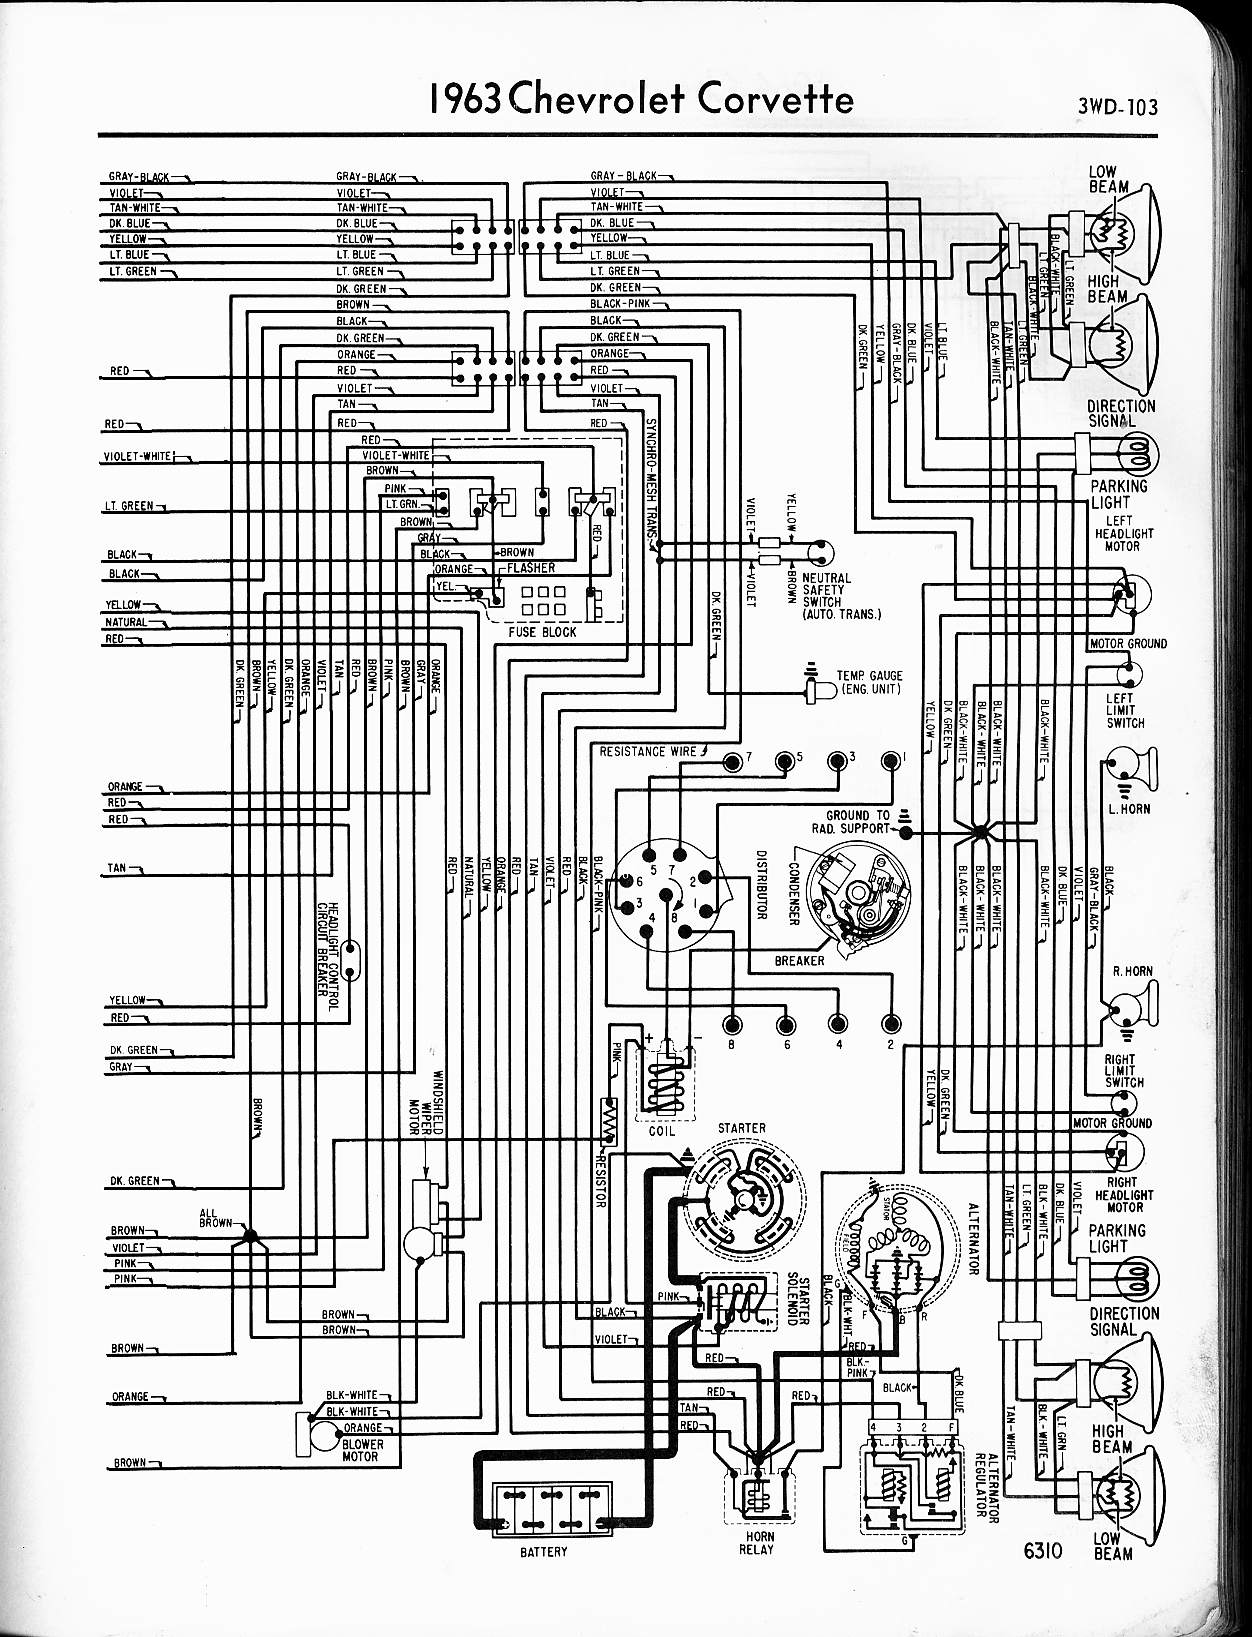 1969 Chevrolet Corvette Wiring Diagram Content Resource Of 1974 Ford Torino 62 Chevy Expert Schematics Rh Atcobennettrecoveries Com 1968